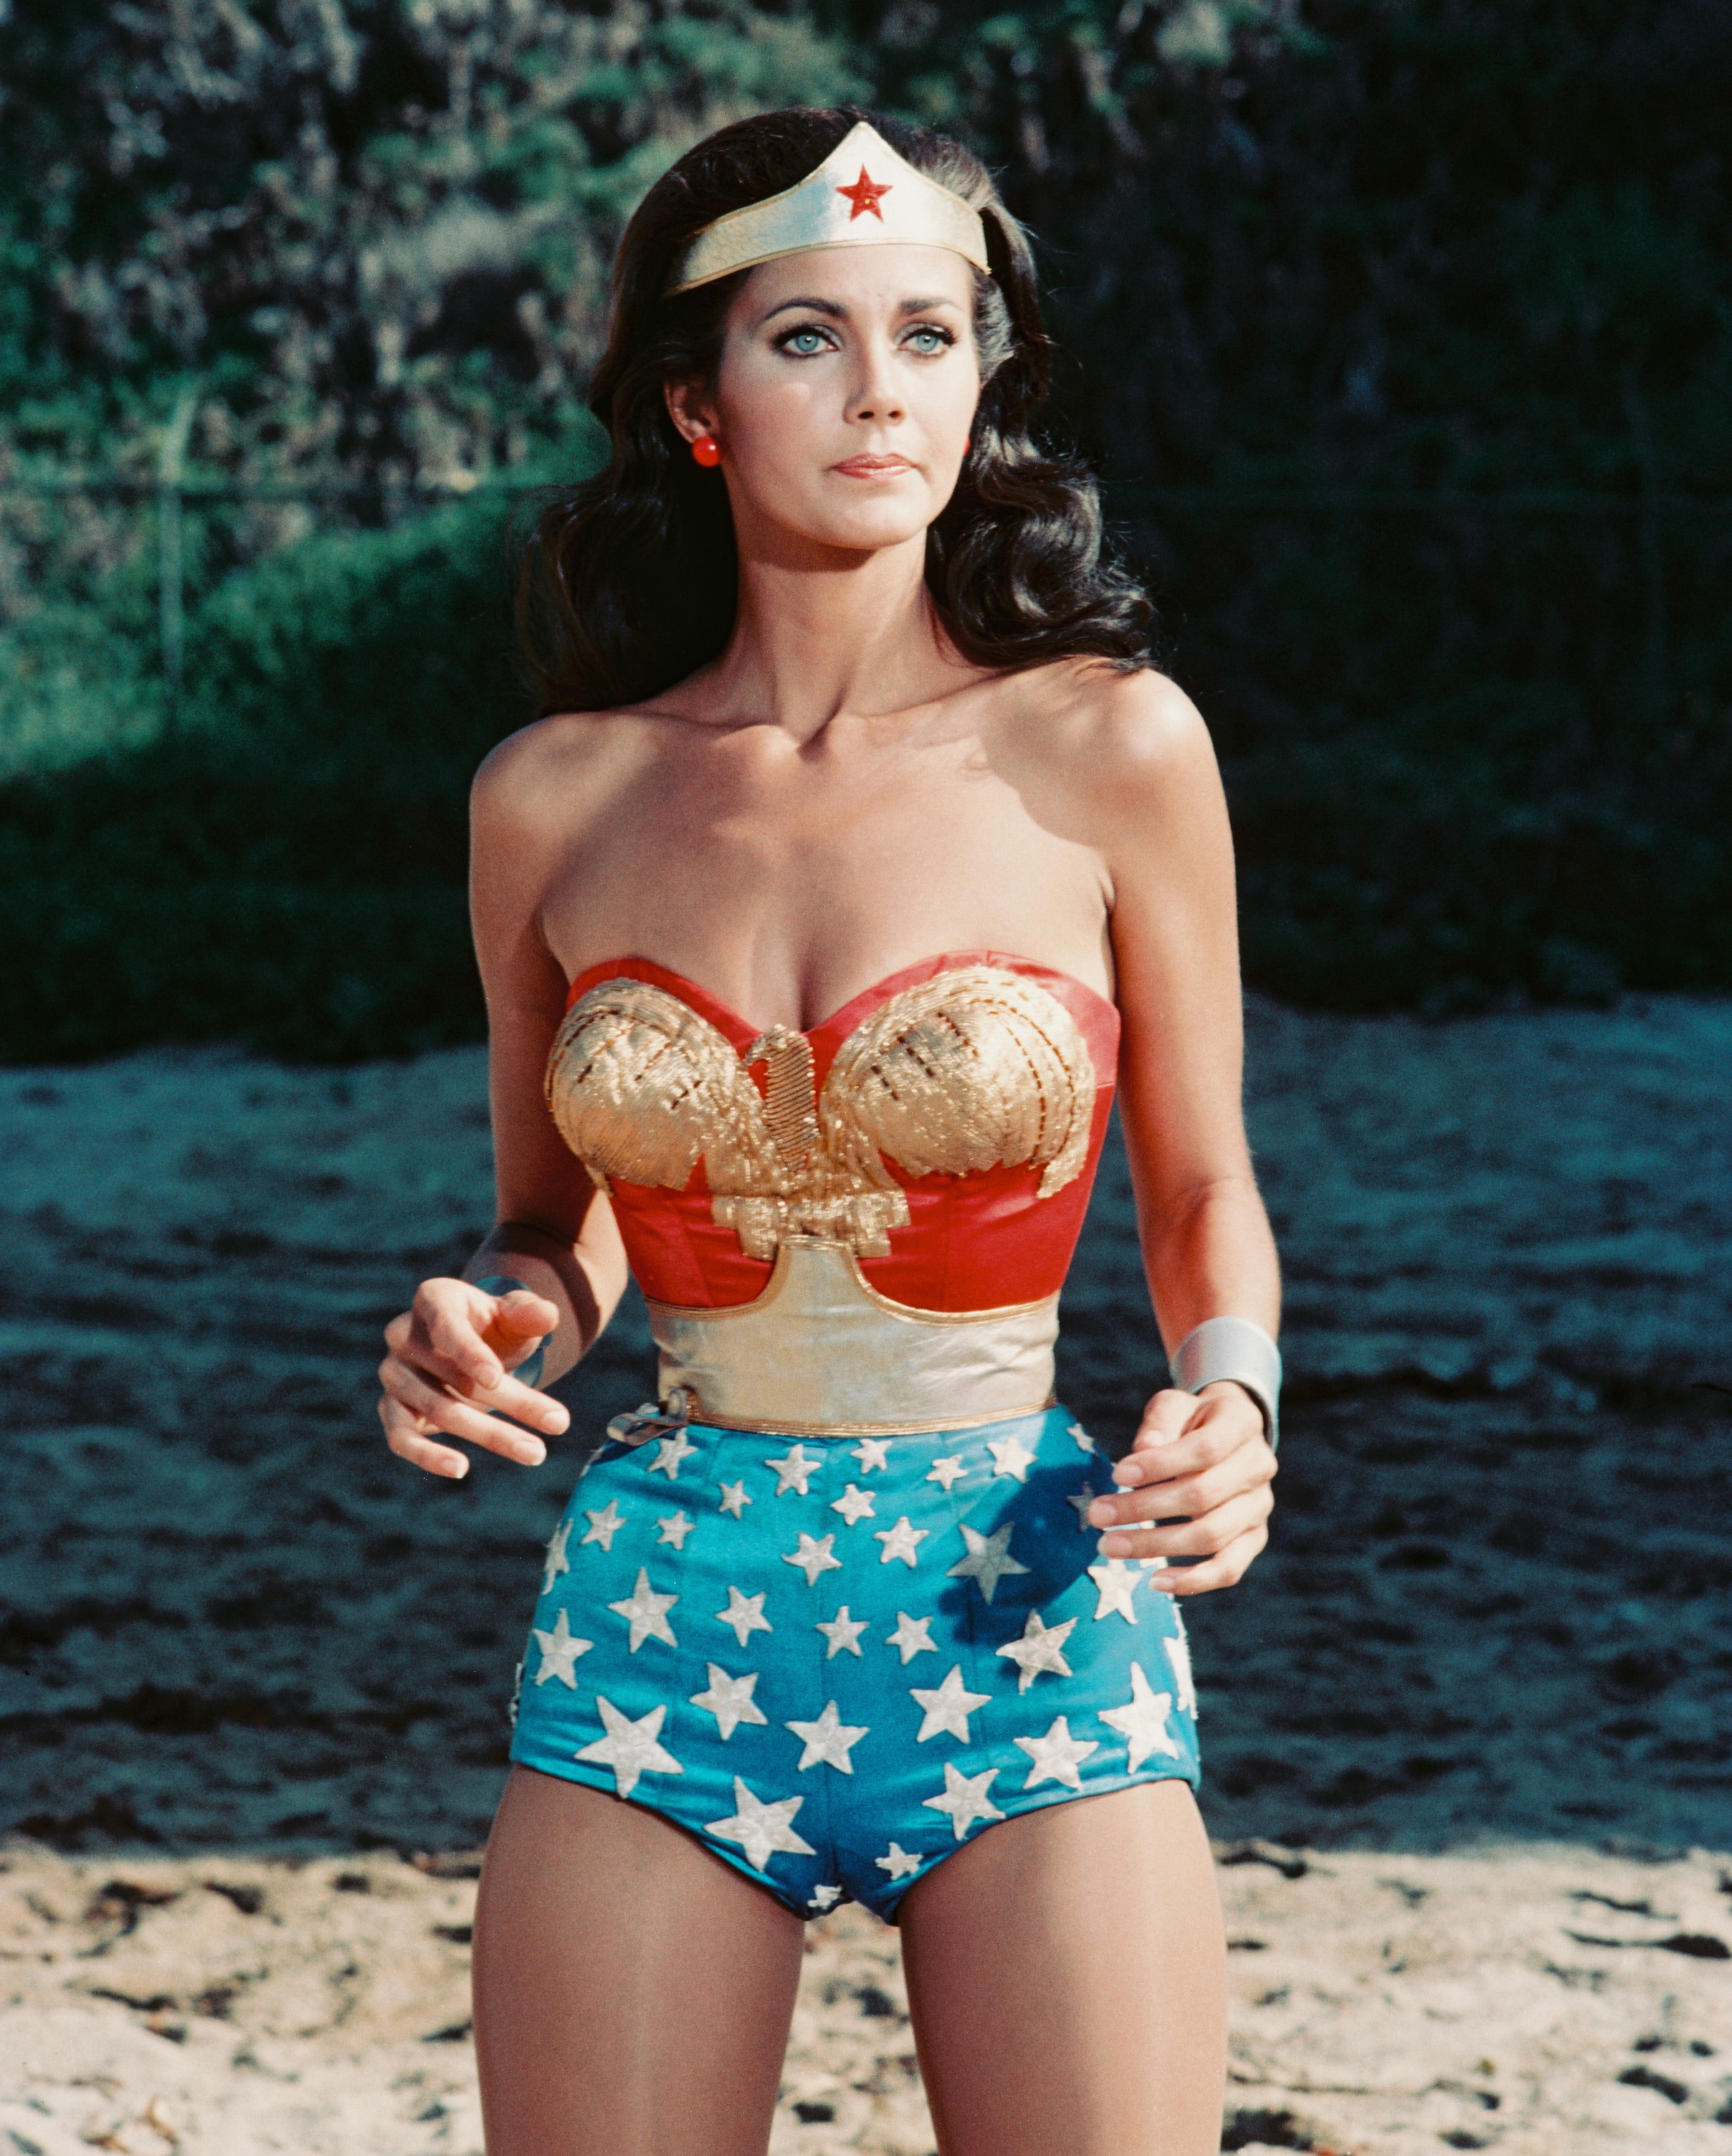 Lynda Carter in Wonder Woman (1975)